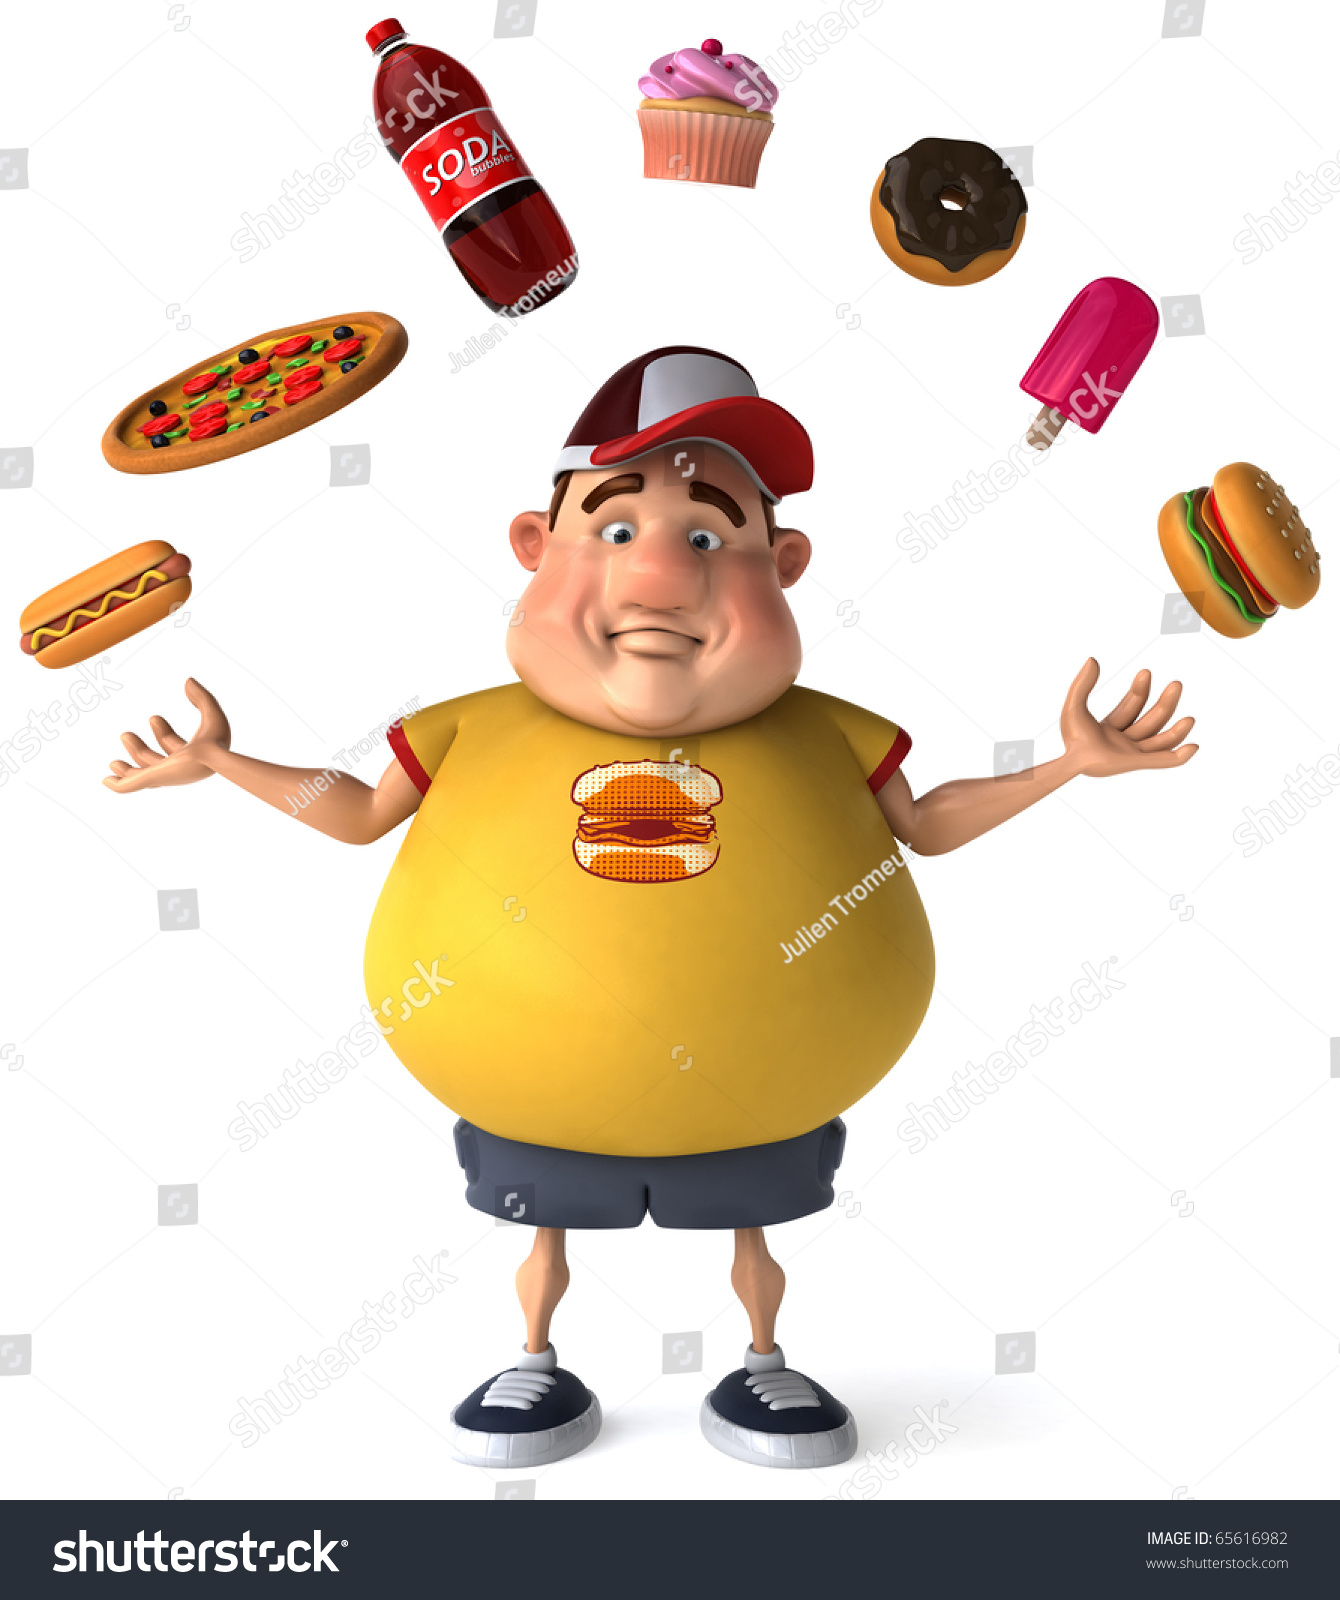 fast food and obesity For instance, children that have a fast food restaurant within 010 miles of their school have a 52% greater chance of being obese for pregnant women, the same distance to fast food restaurants increases their obesity odds by 25% no other restaurant types have any correlation with obesity rates.